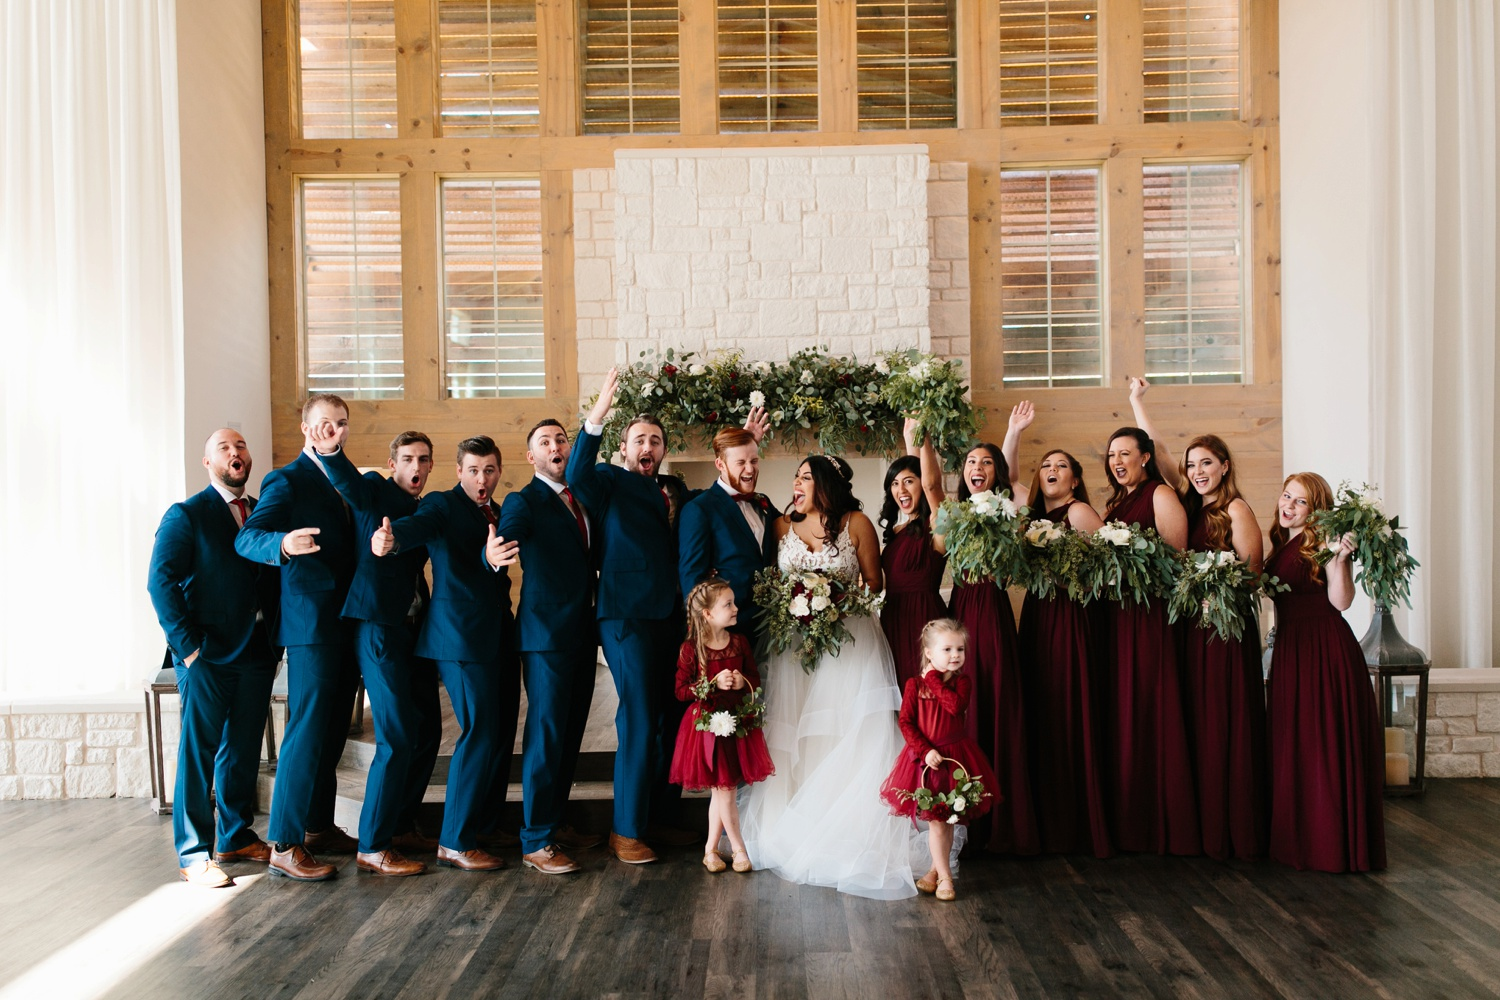 Grant + Lysette | a vibrant, deep burgundy and navy, and mixed metals wedding at Hidden Pines Chapel by North Texas Wedding Photographer Rachel Meagan Photography 118